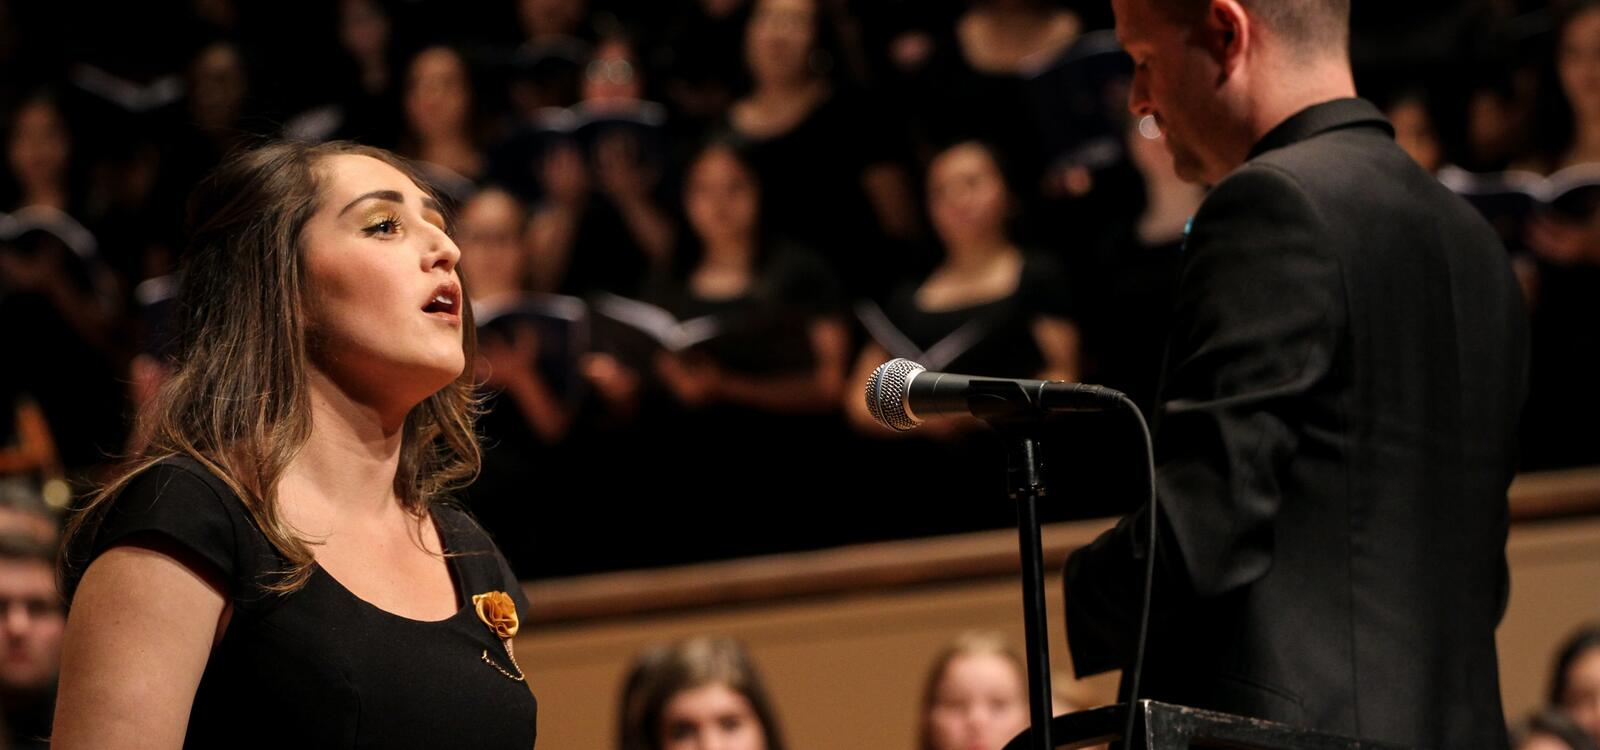 A female student stand in a black gown as she sings in fron of a mic. Her director can be seen beside her and the choir blurred behind her.